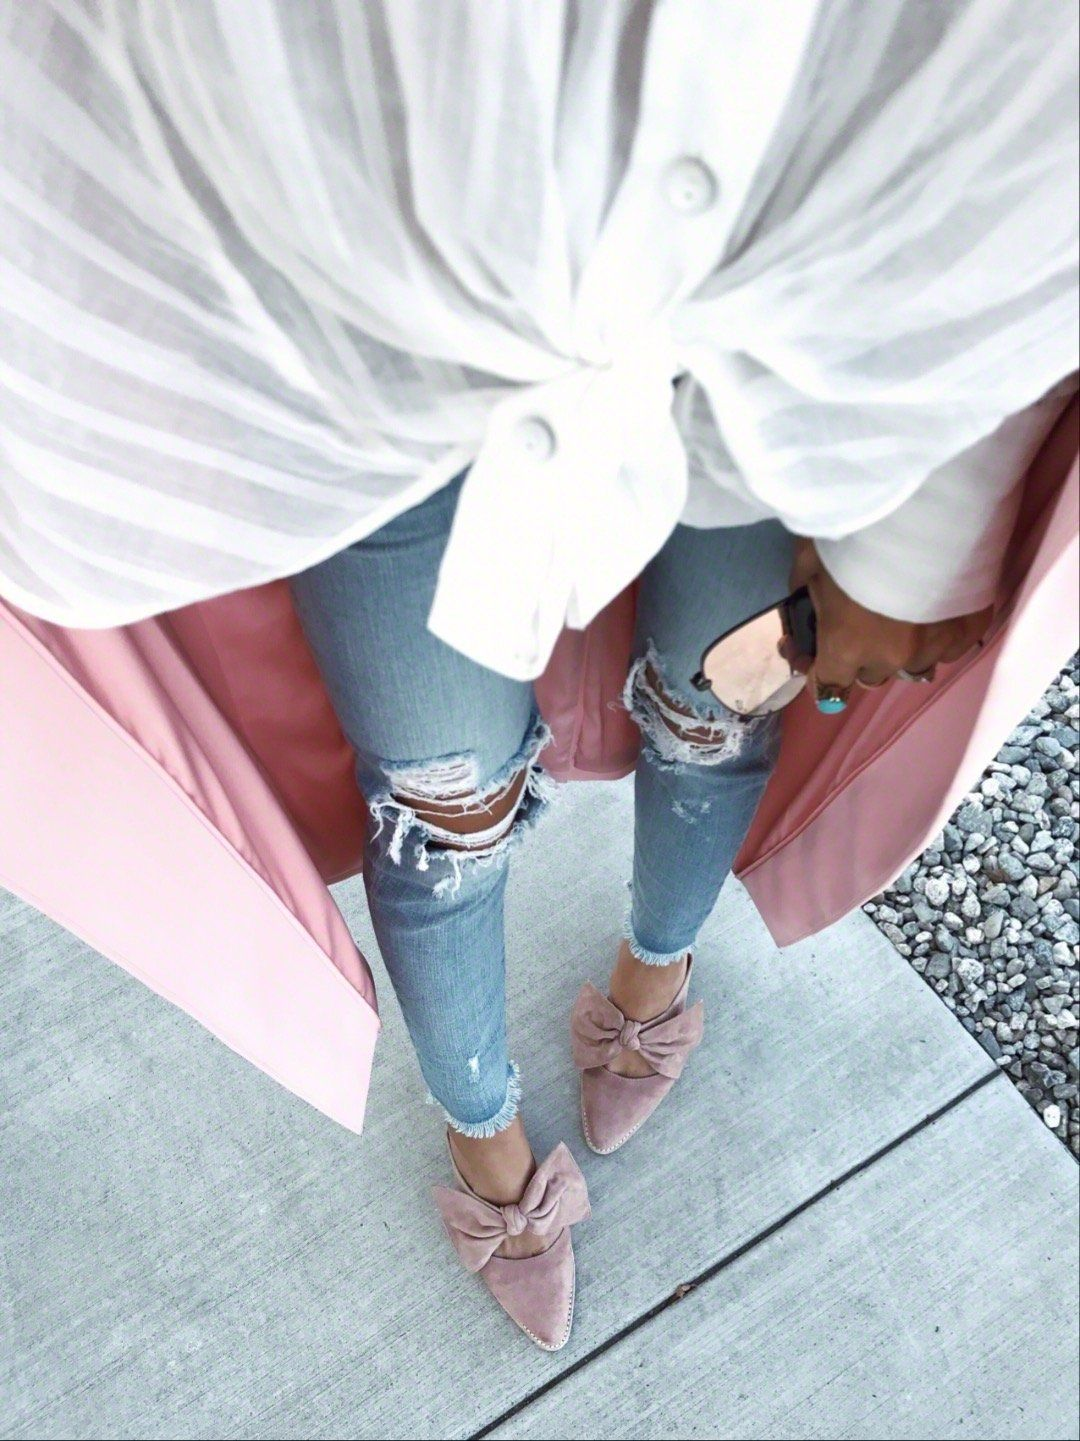 632167236b4 Jeffrey Campbell Cyrus Bow Mules Photo via  shalicenoel ) APantsRomance